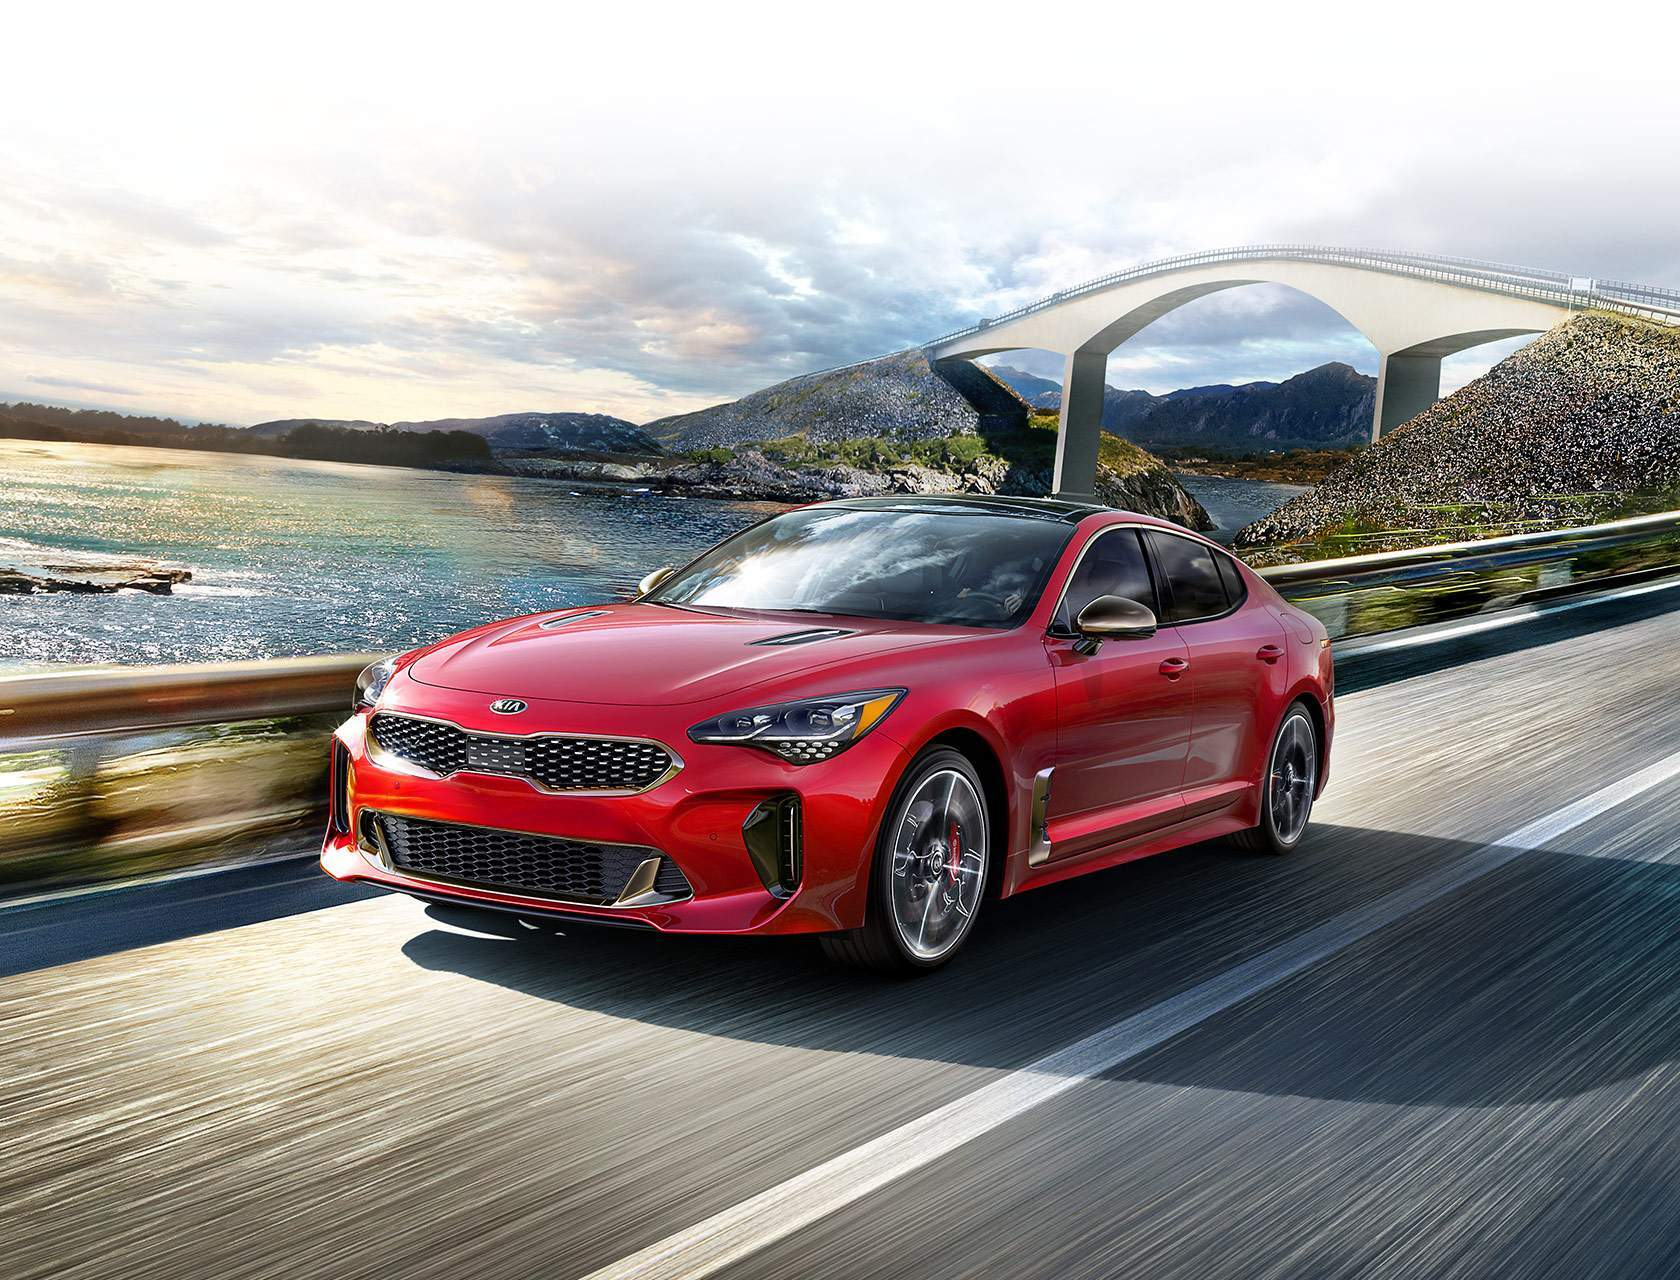 2018 Kia Stinger in West Salem, WI